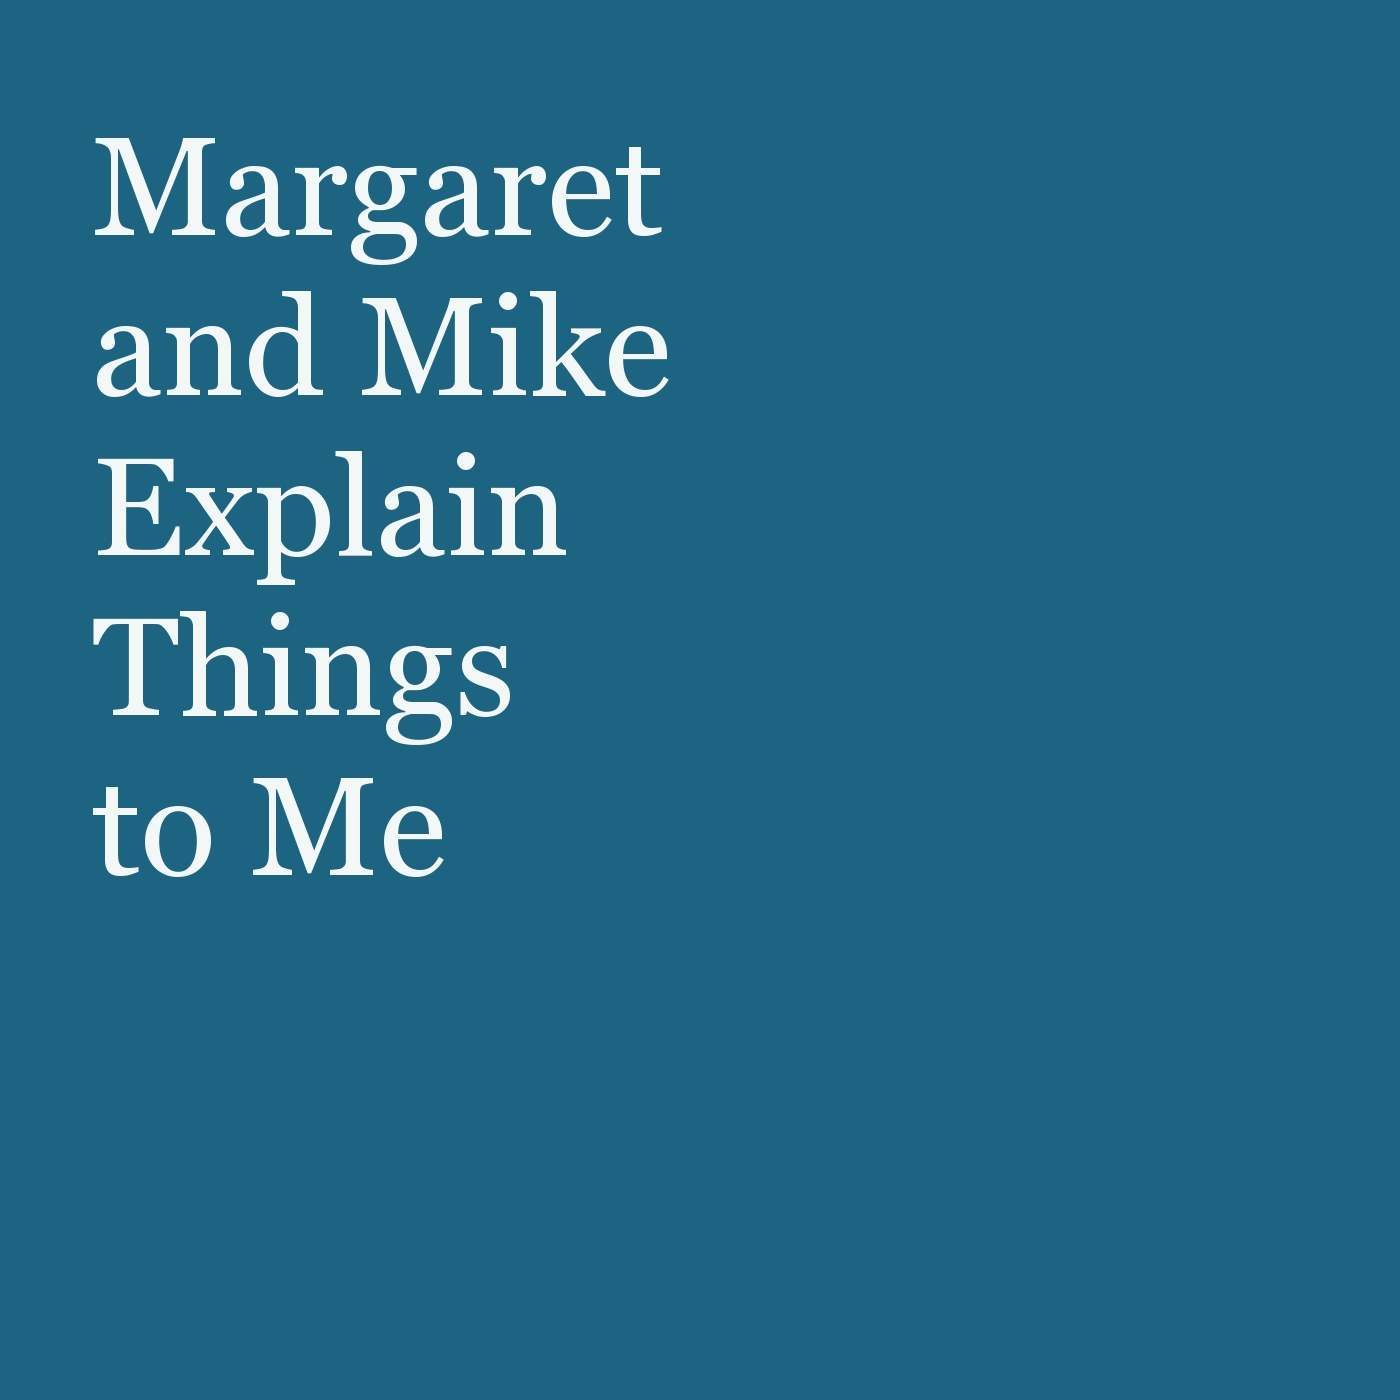 Margaret and Mike Explain Things to Me